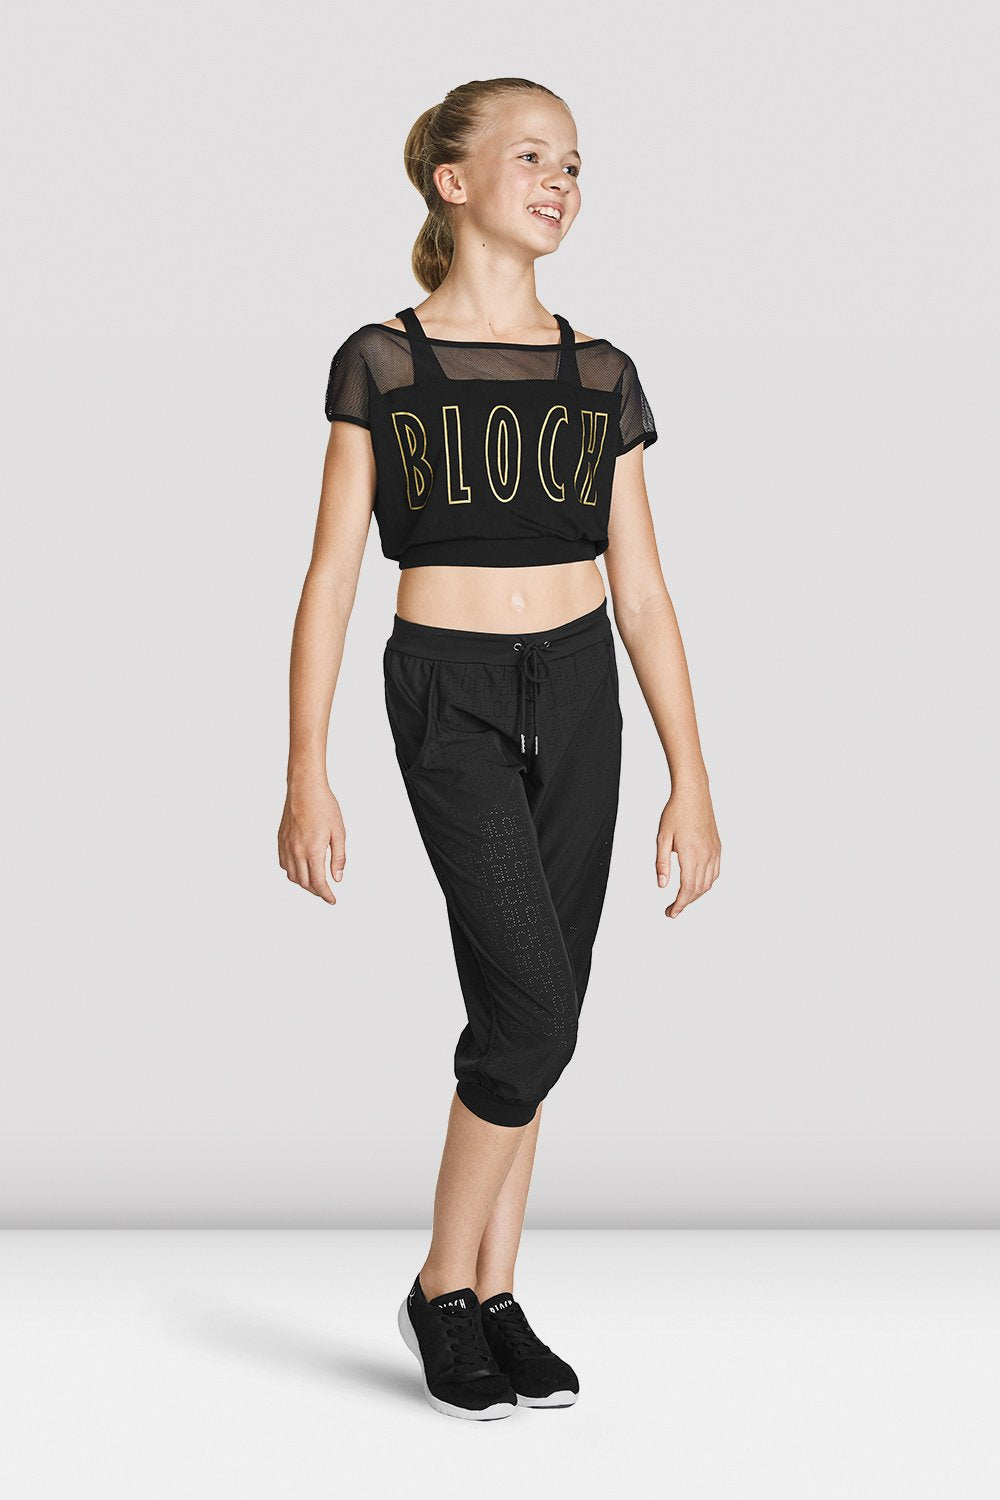 FT5219C Girls Crop Mesh Tee